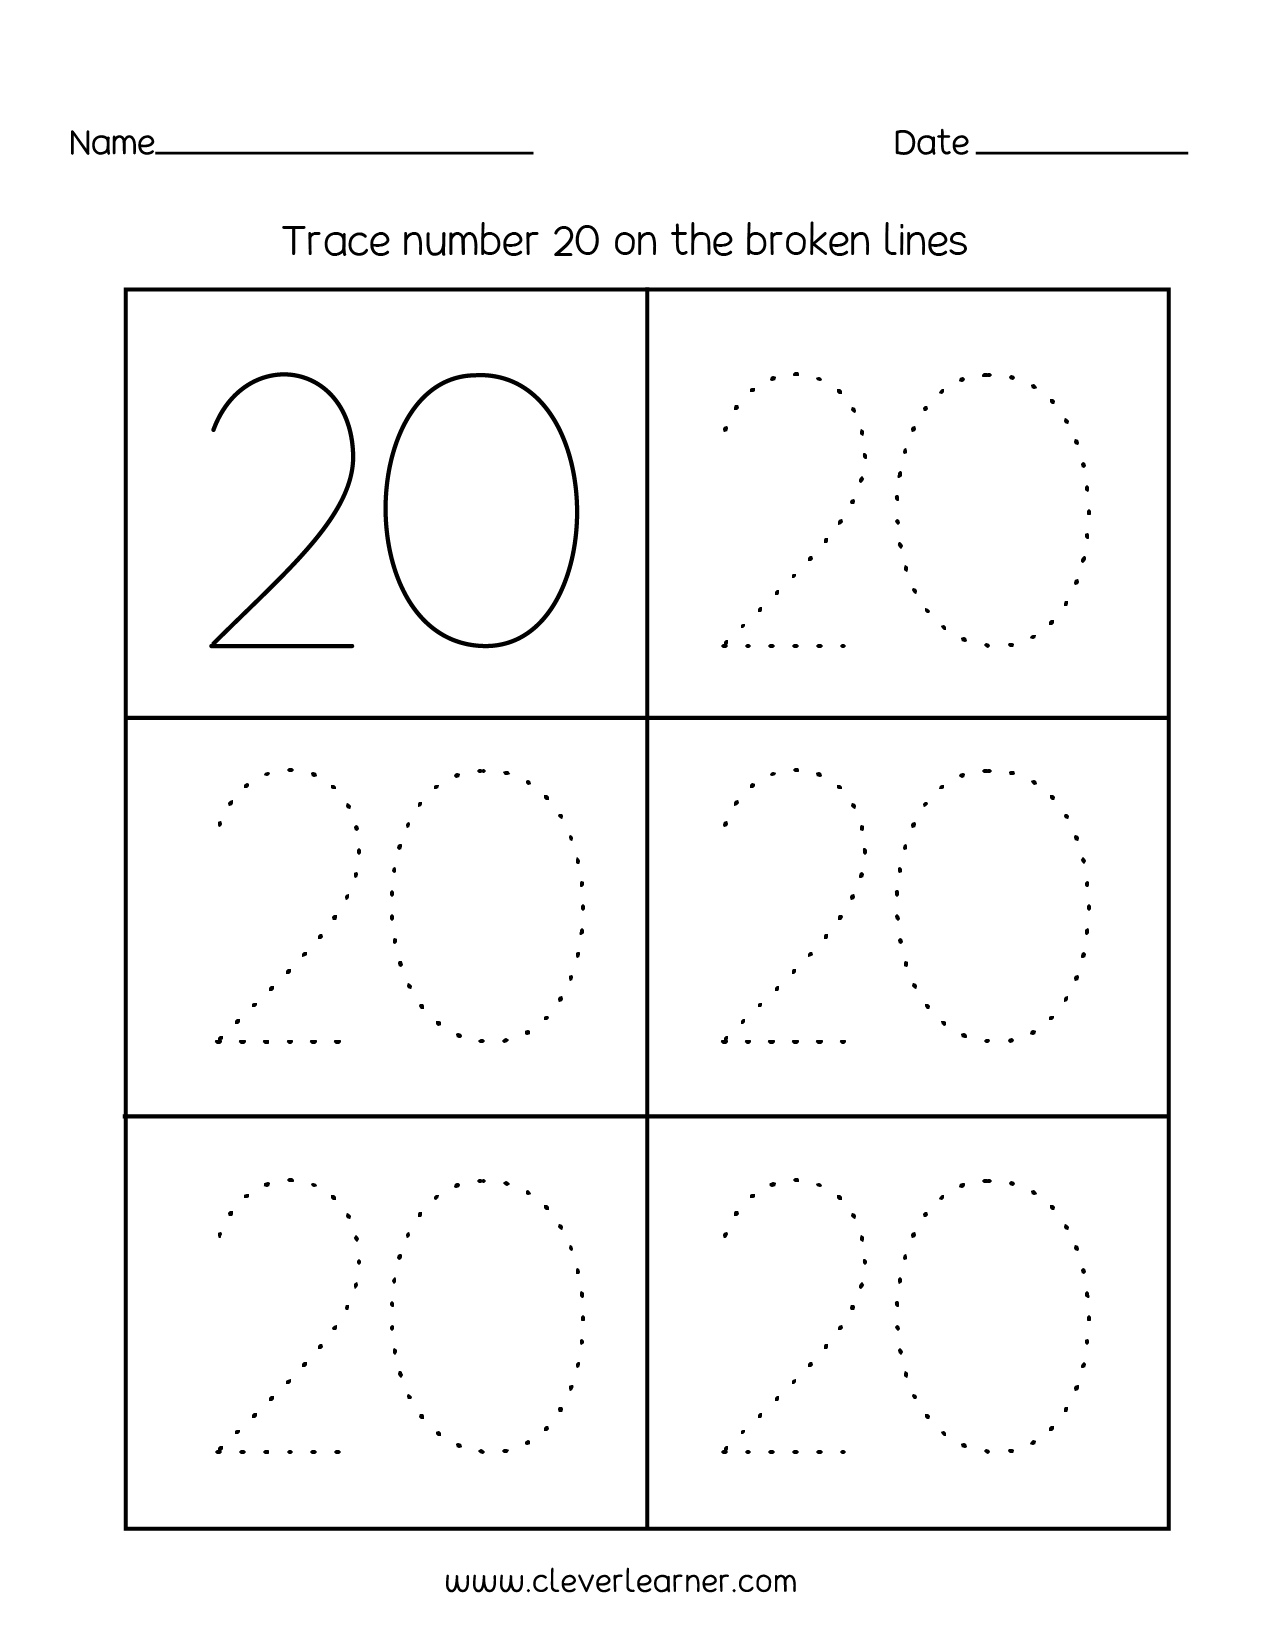 Number 20 Writing, Counting And Identification Printable Worksheets - Free Printable Tracing Numbers 1 20 Worksheets